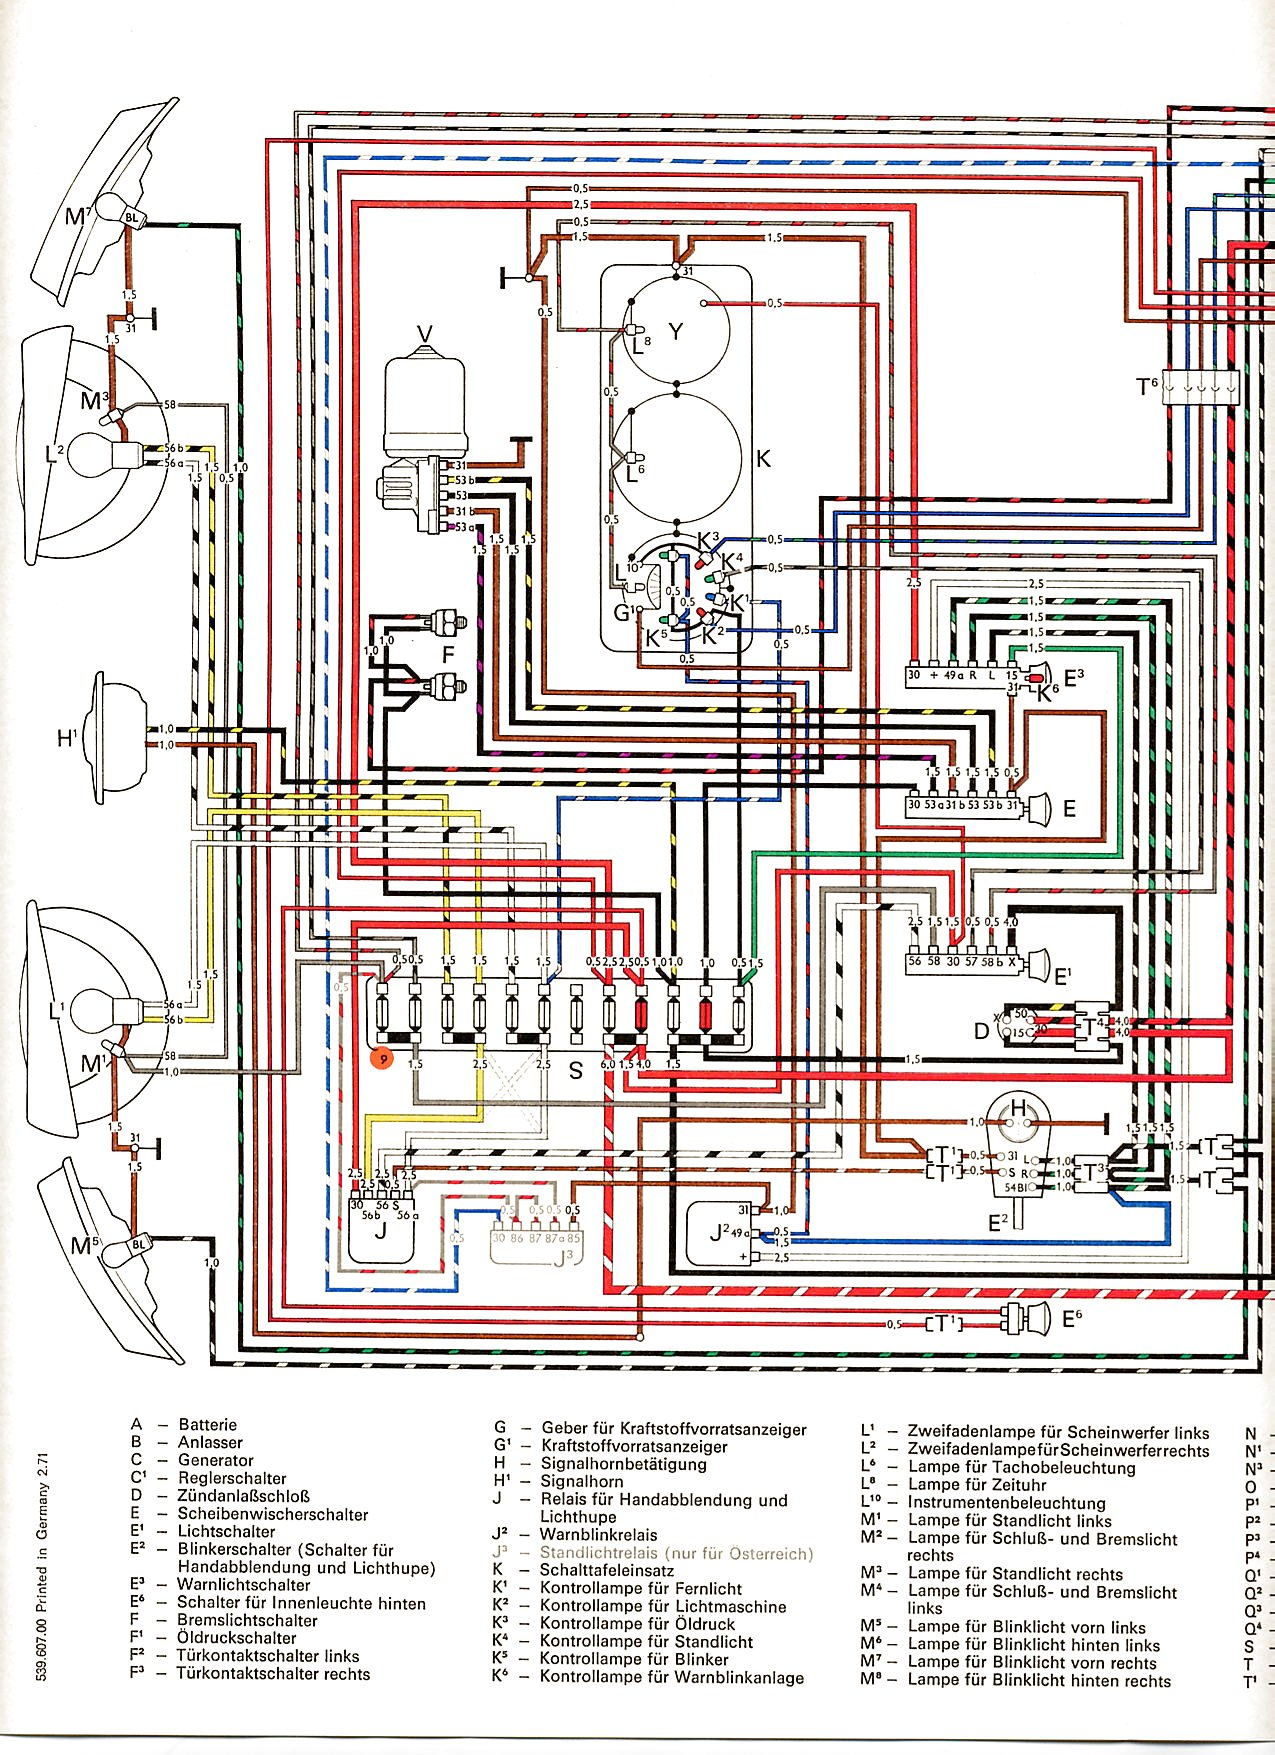 volkswagen t25 wiring diagram cc7c vw t5 central locking wiring diagram wiring resources  cc7c vw t5 central locking wiring